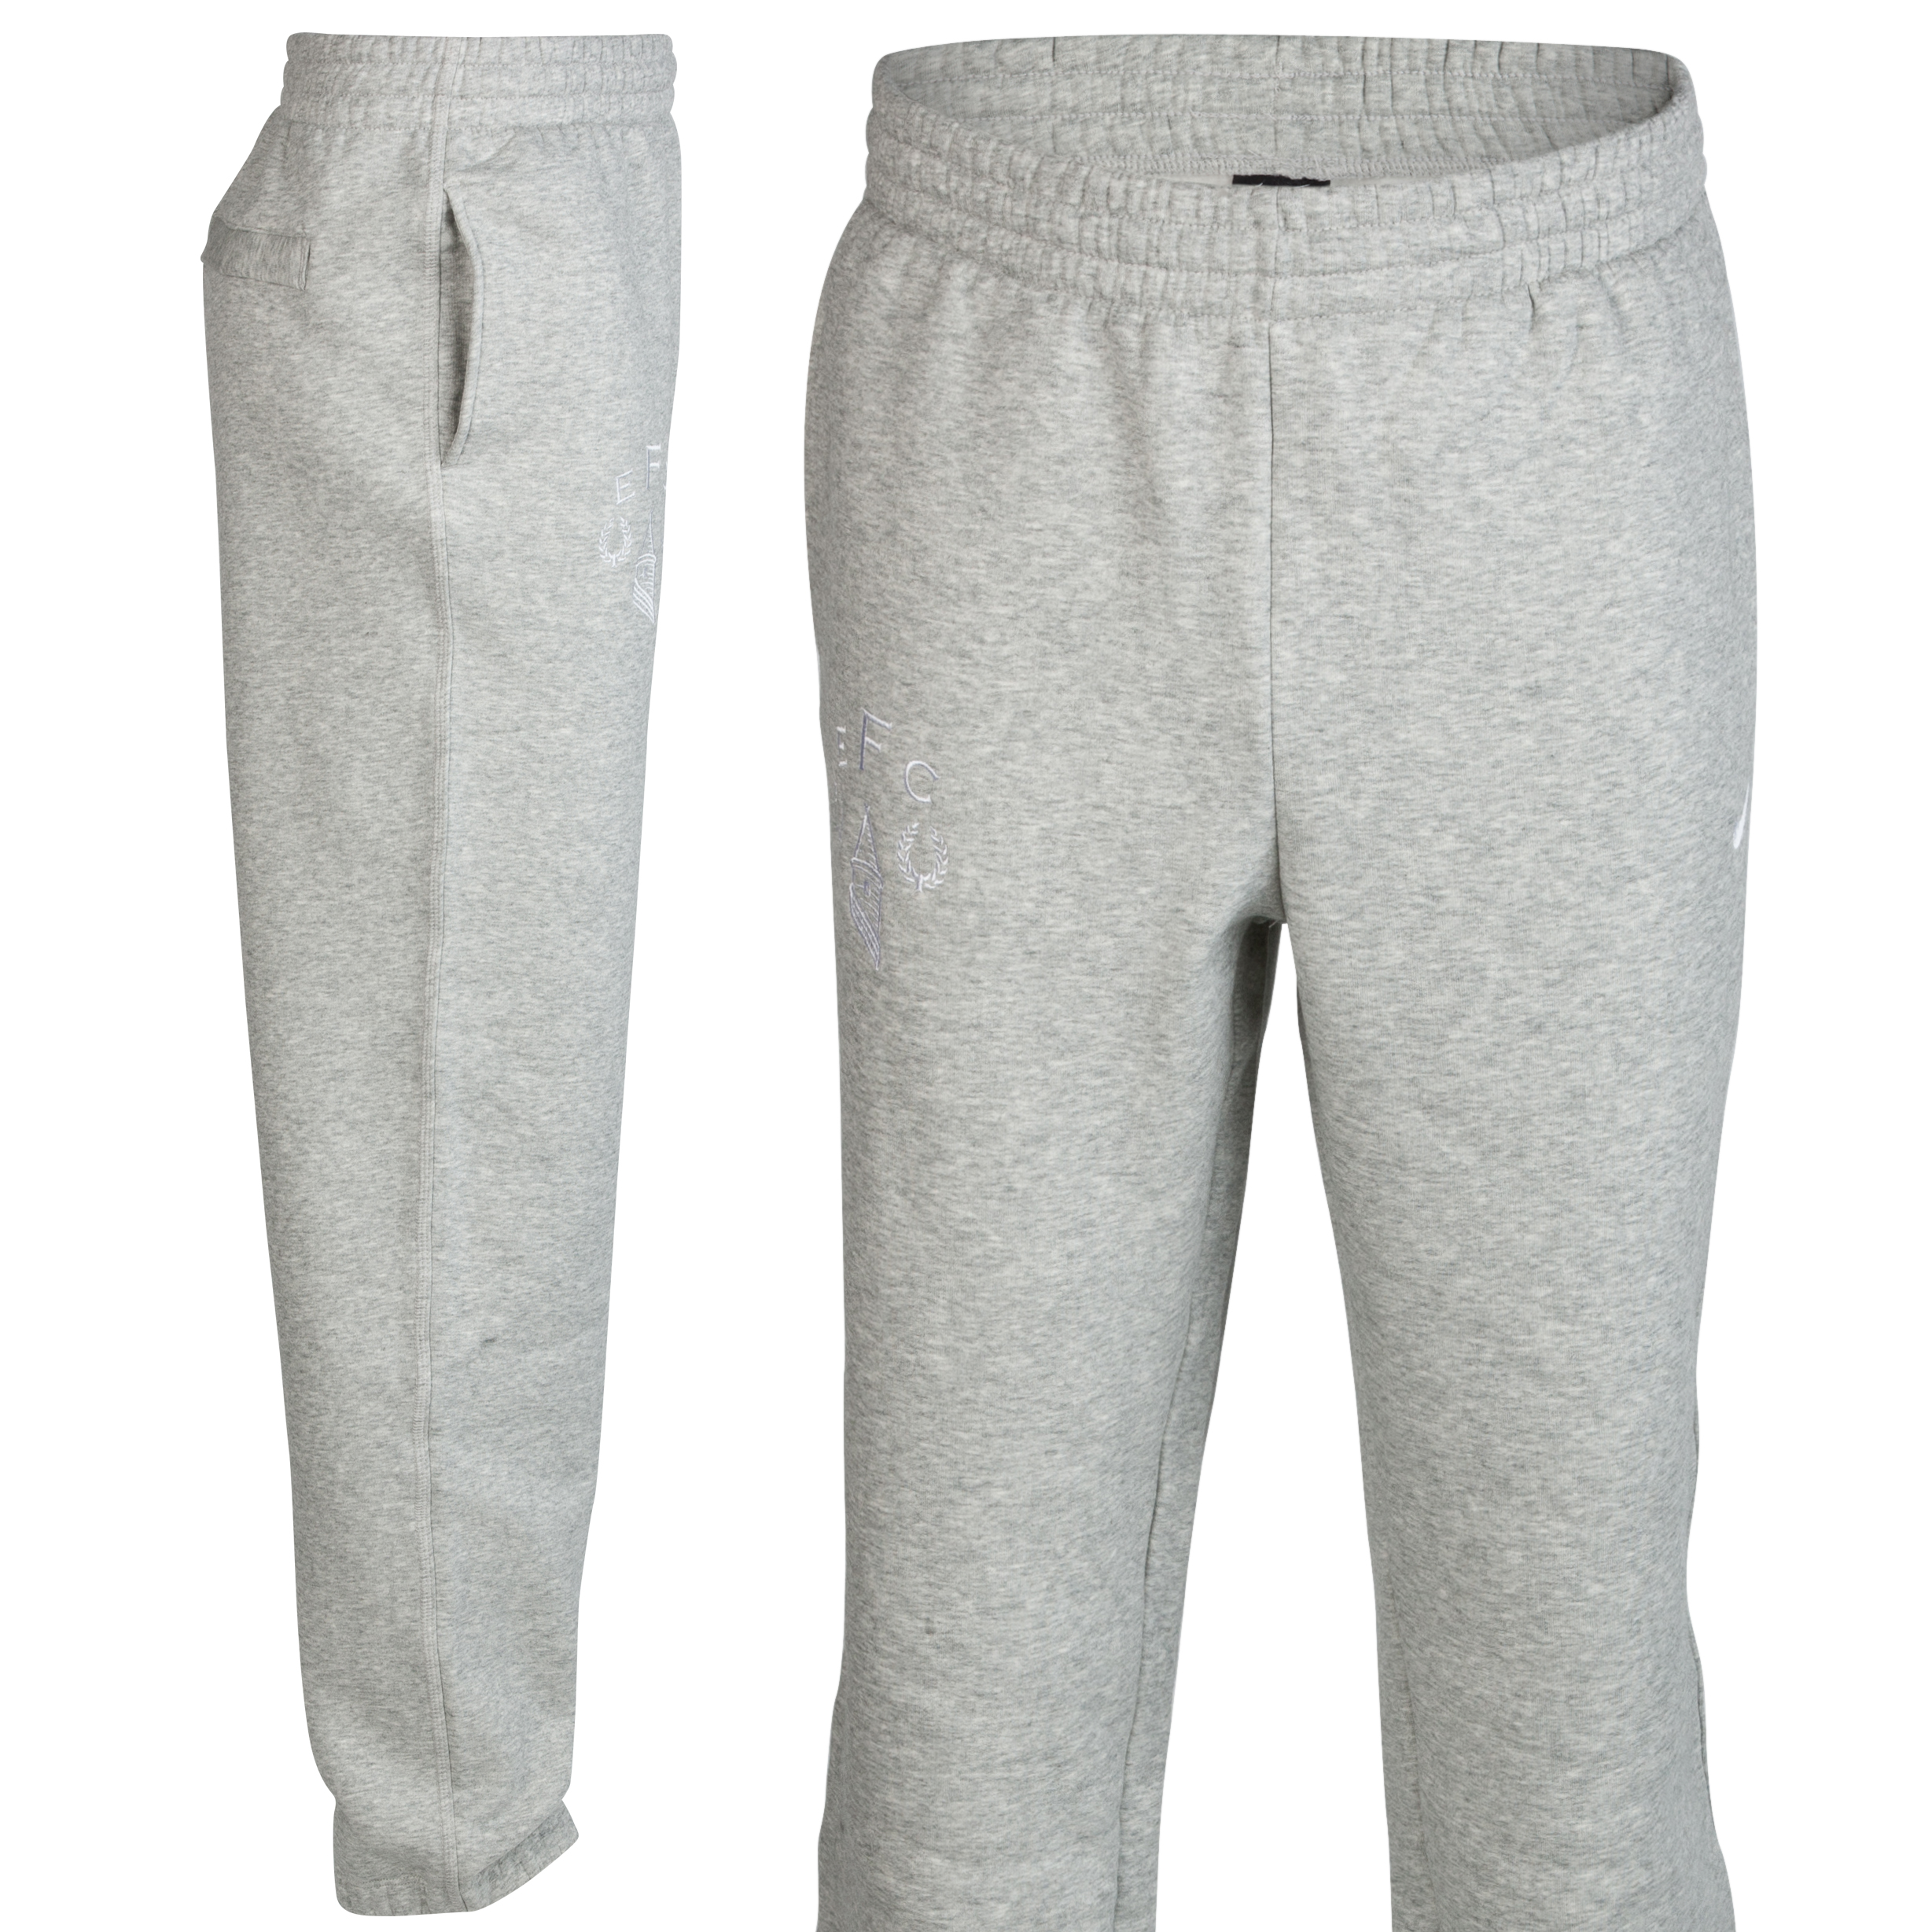 Everton Heritage Cuff Pant - Grey Heather/White